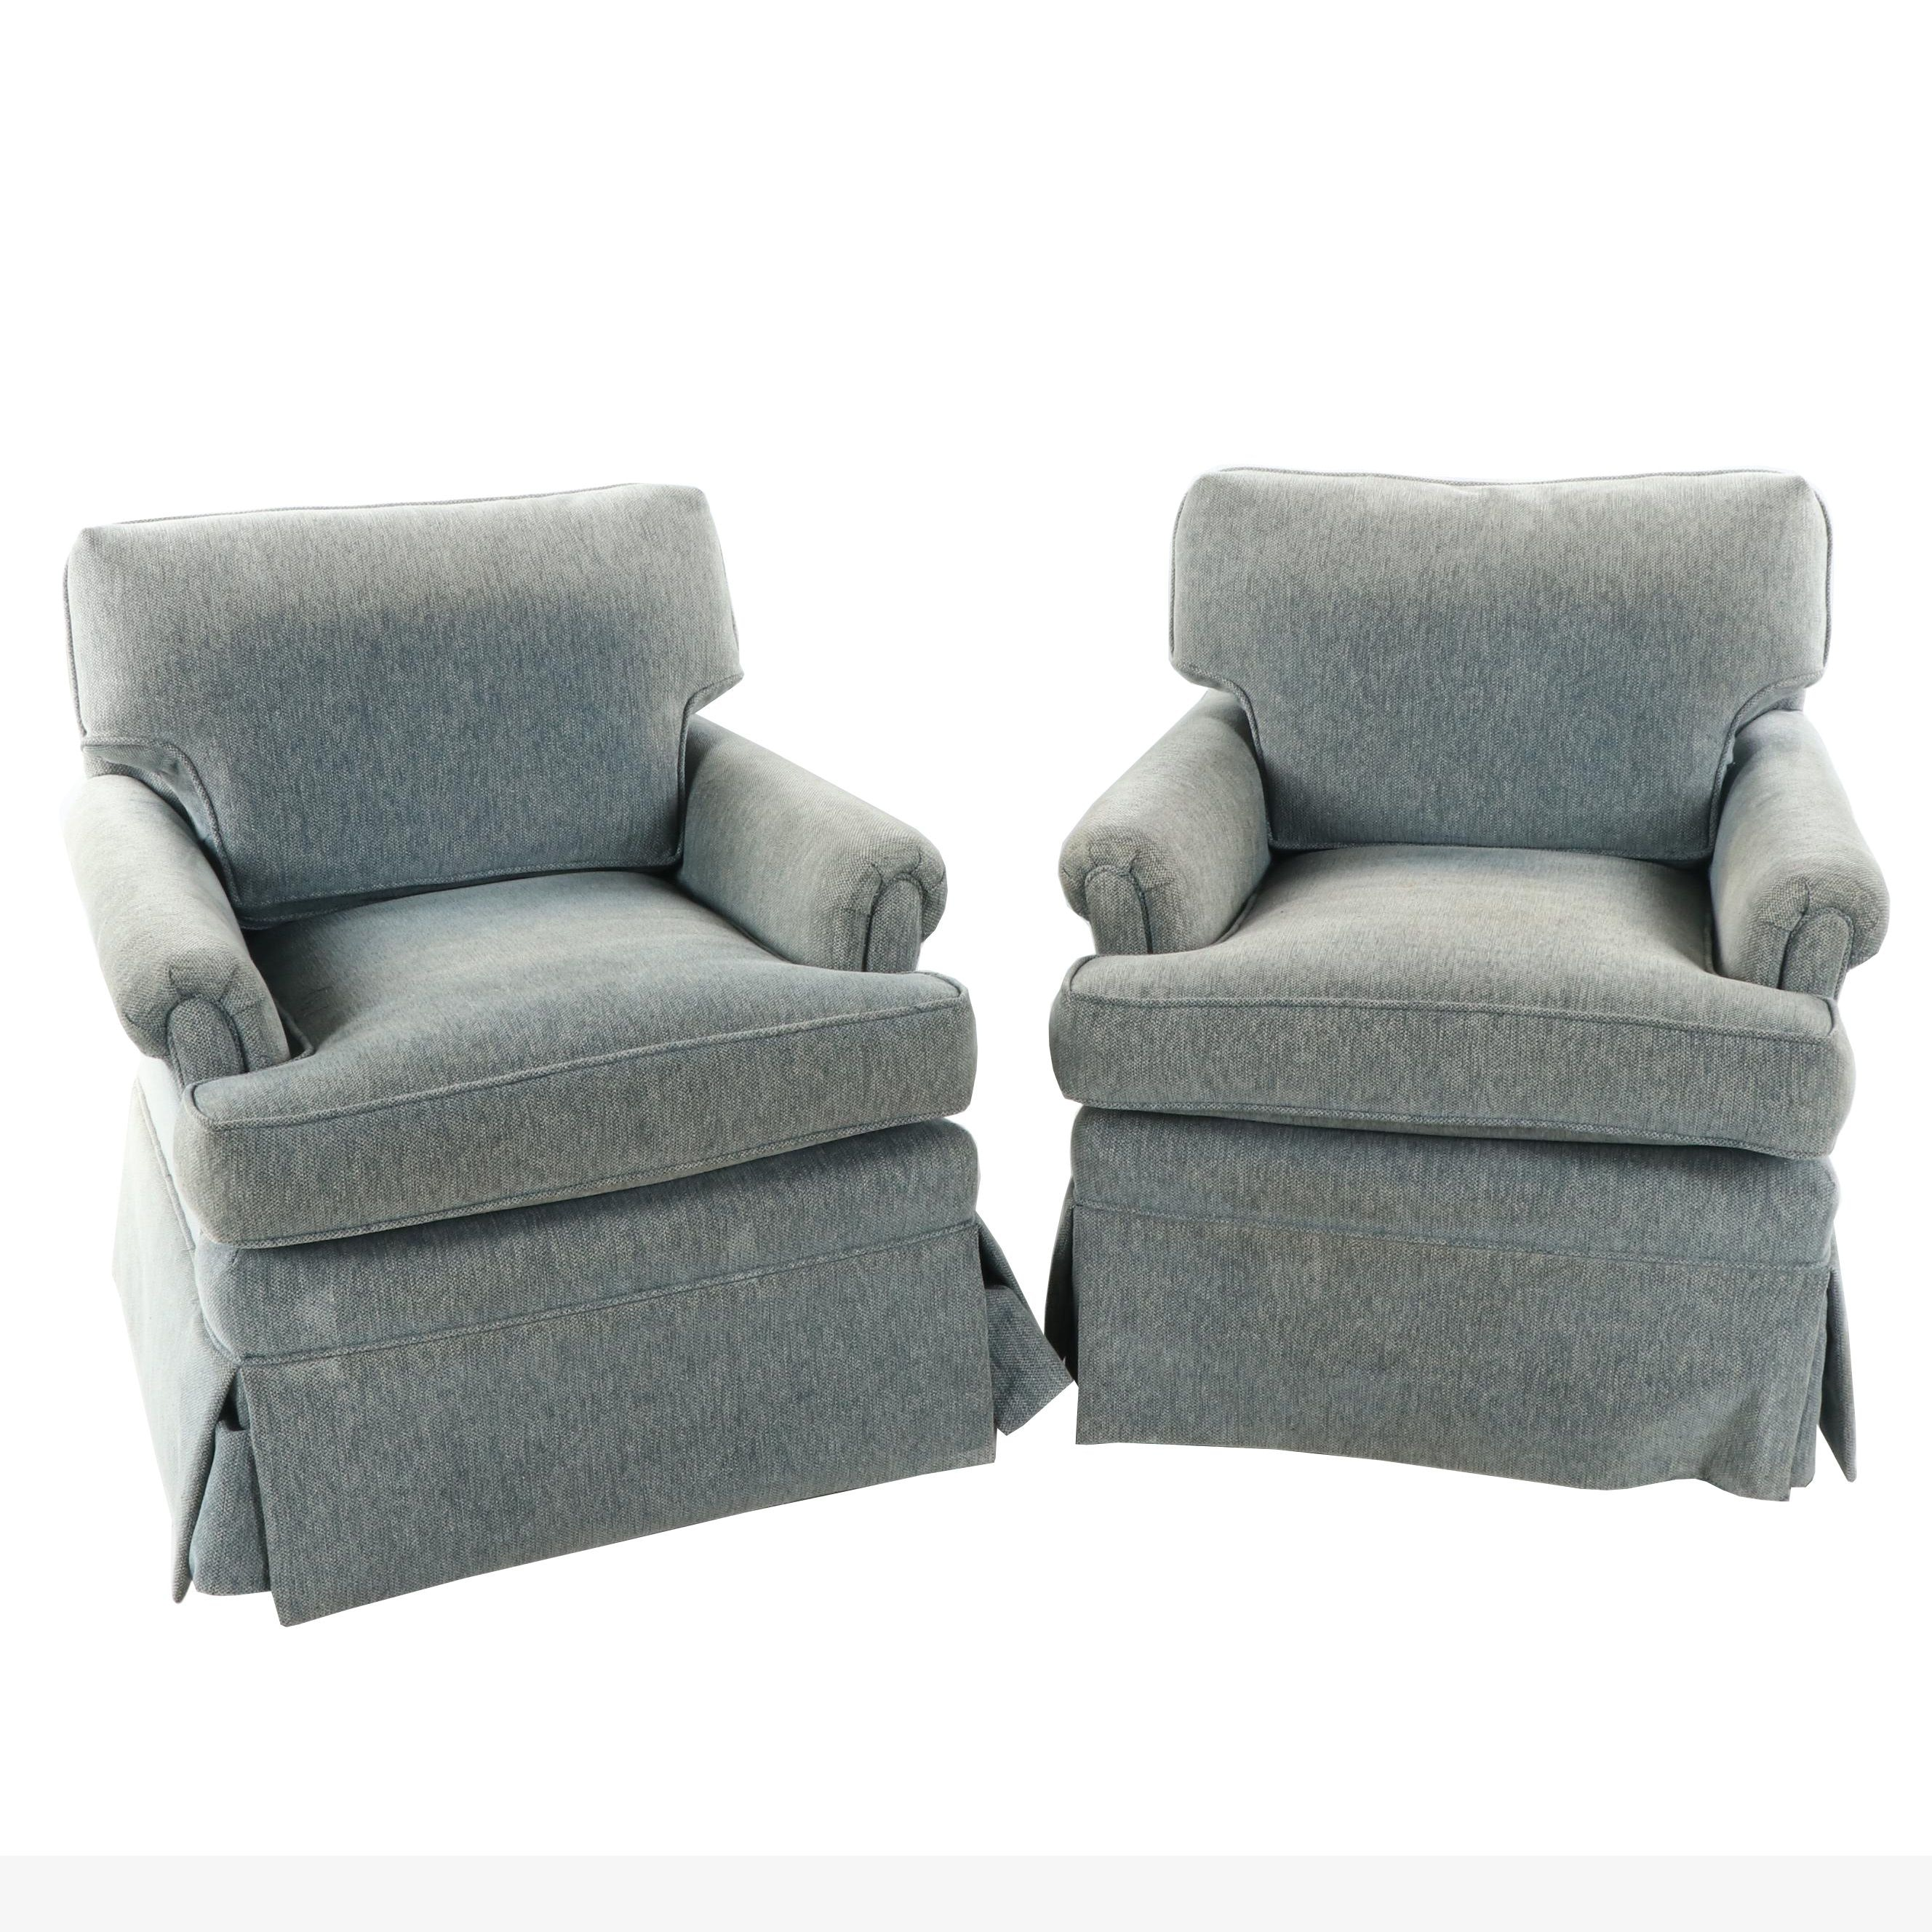 Upholstered Armchairs, 21st Century